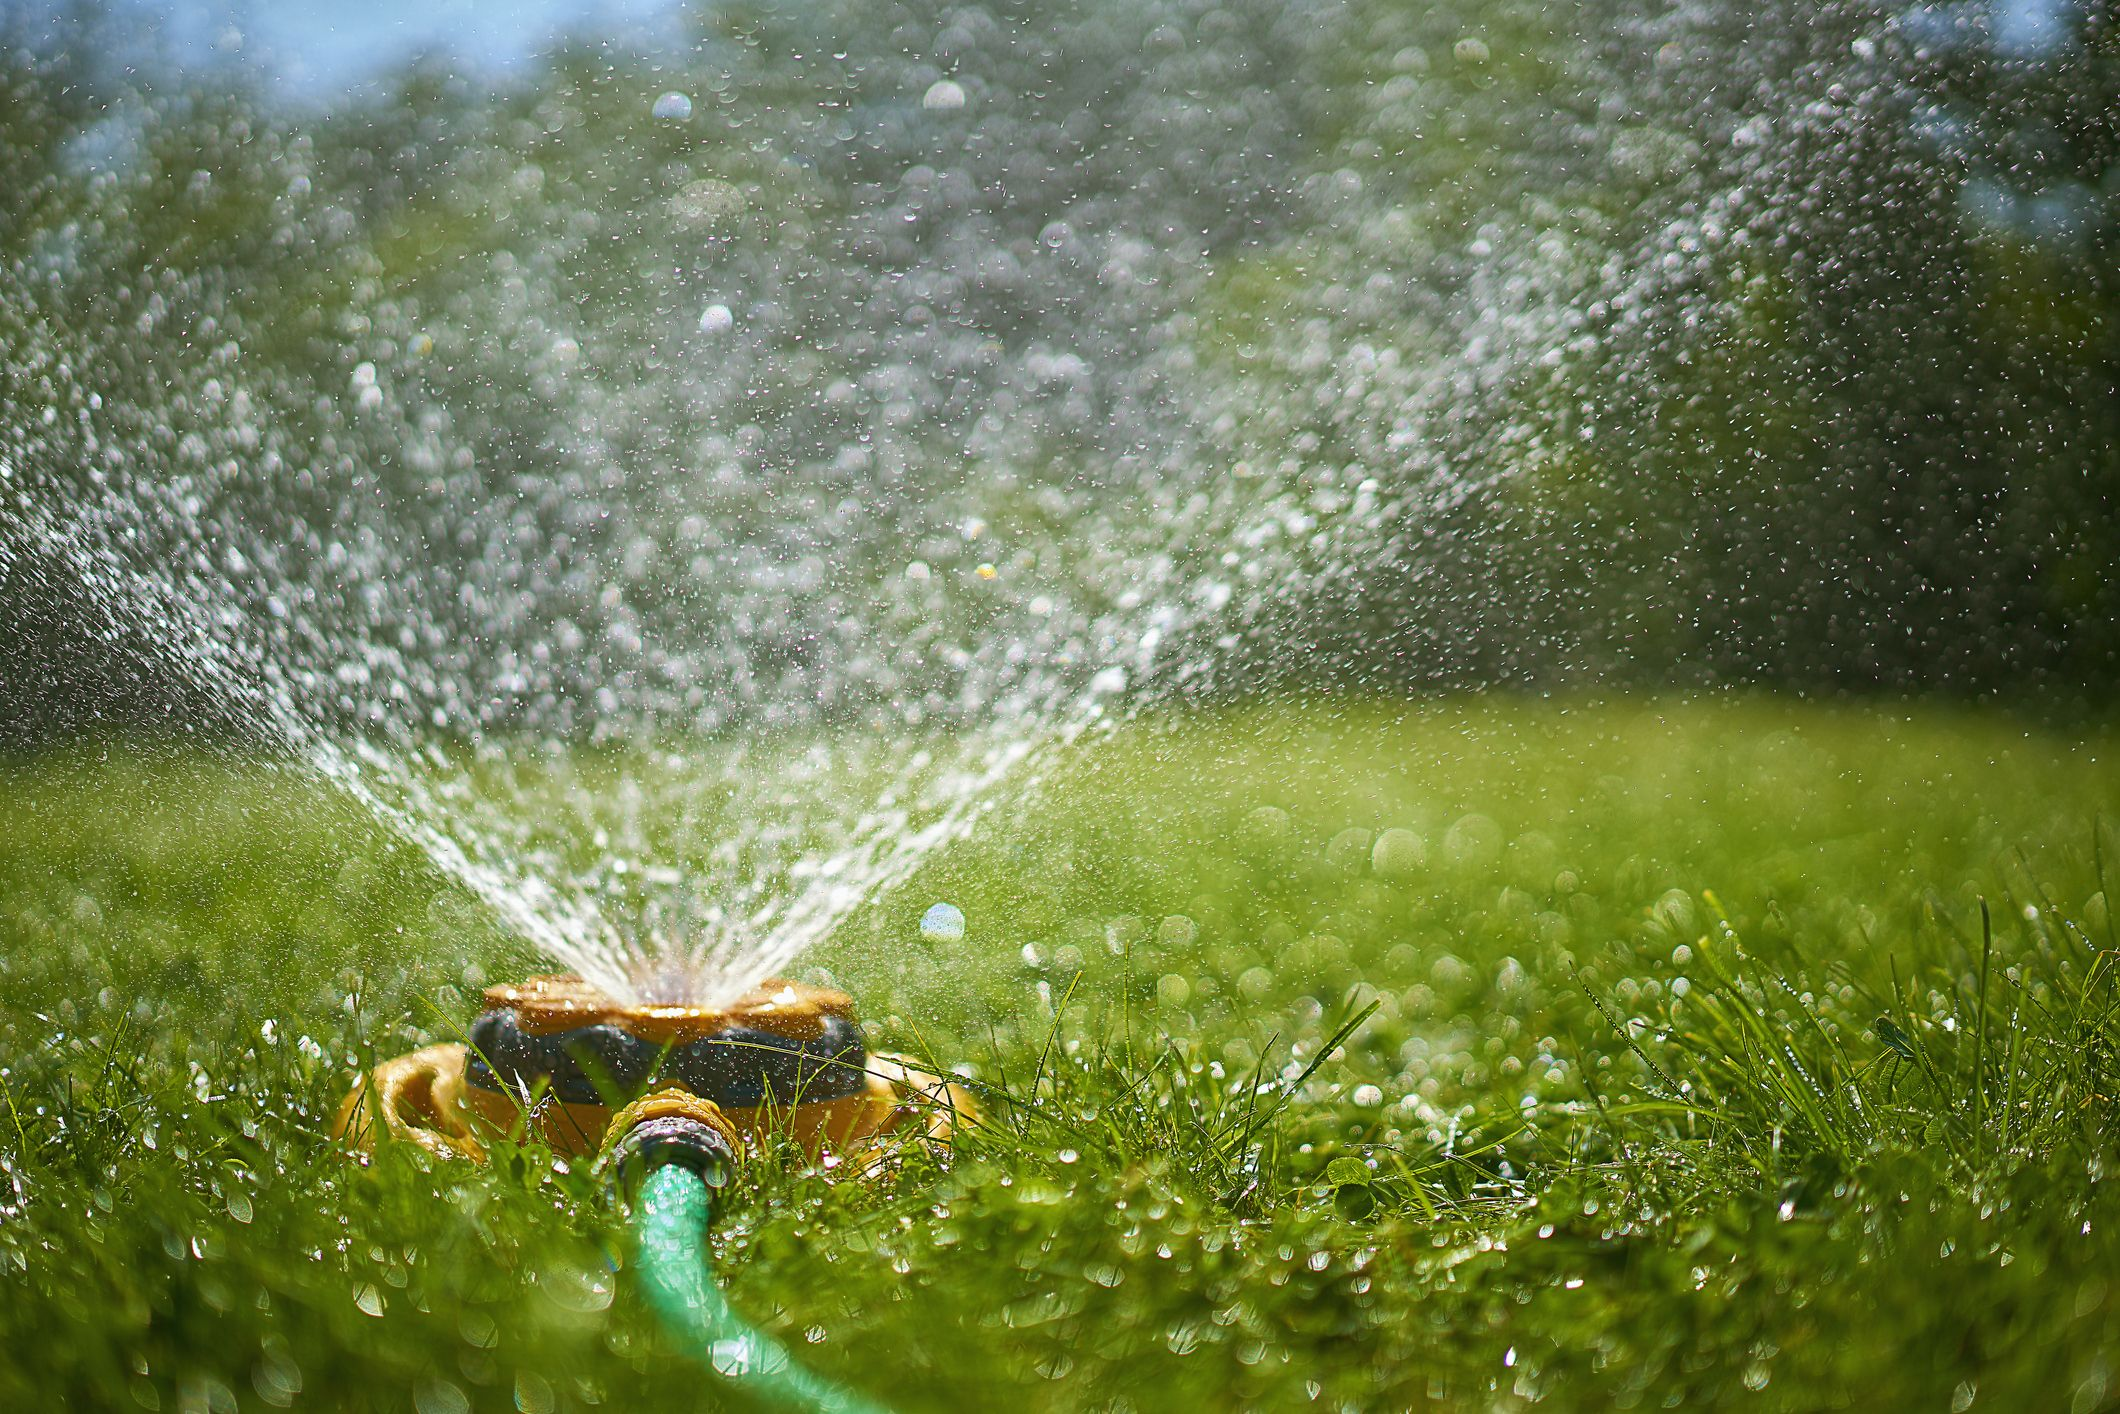 Best Time to Water Grass - Lawn Watering Tips